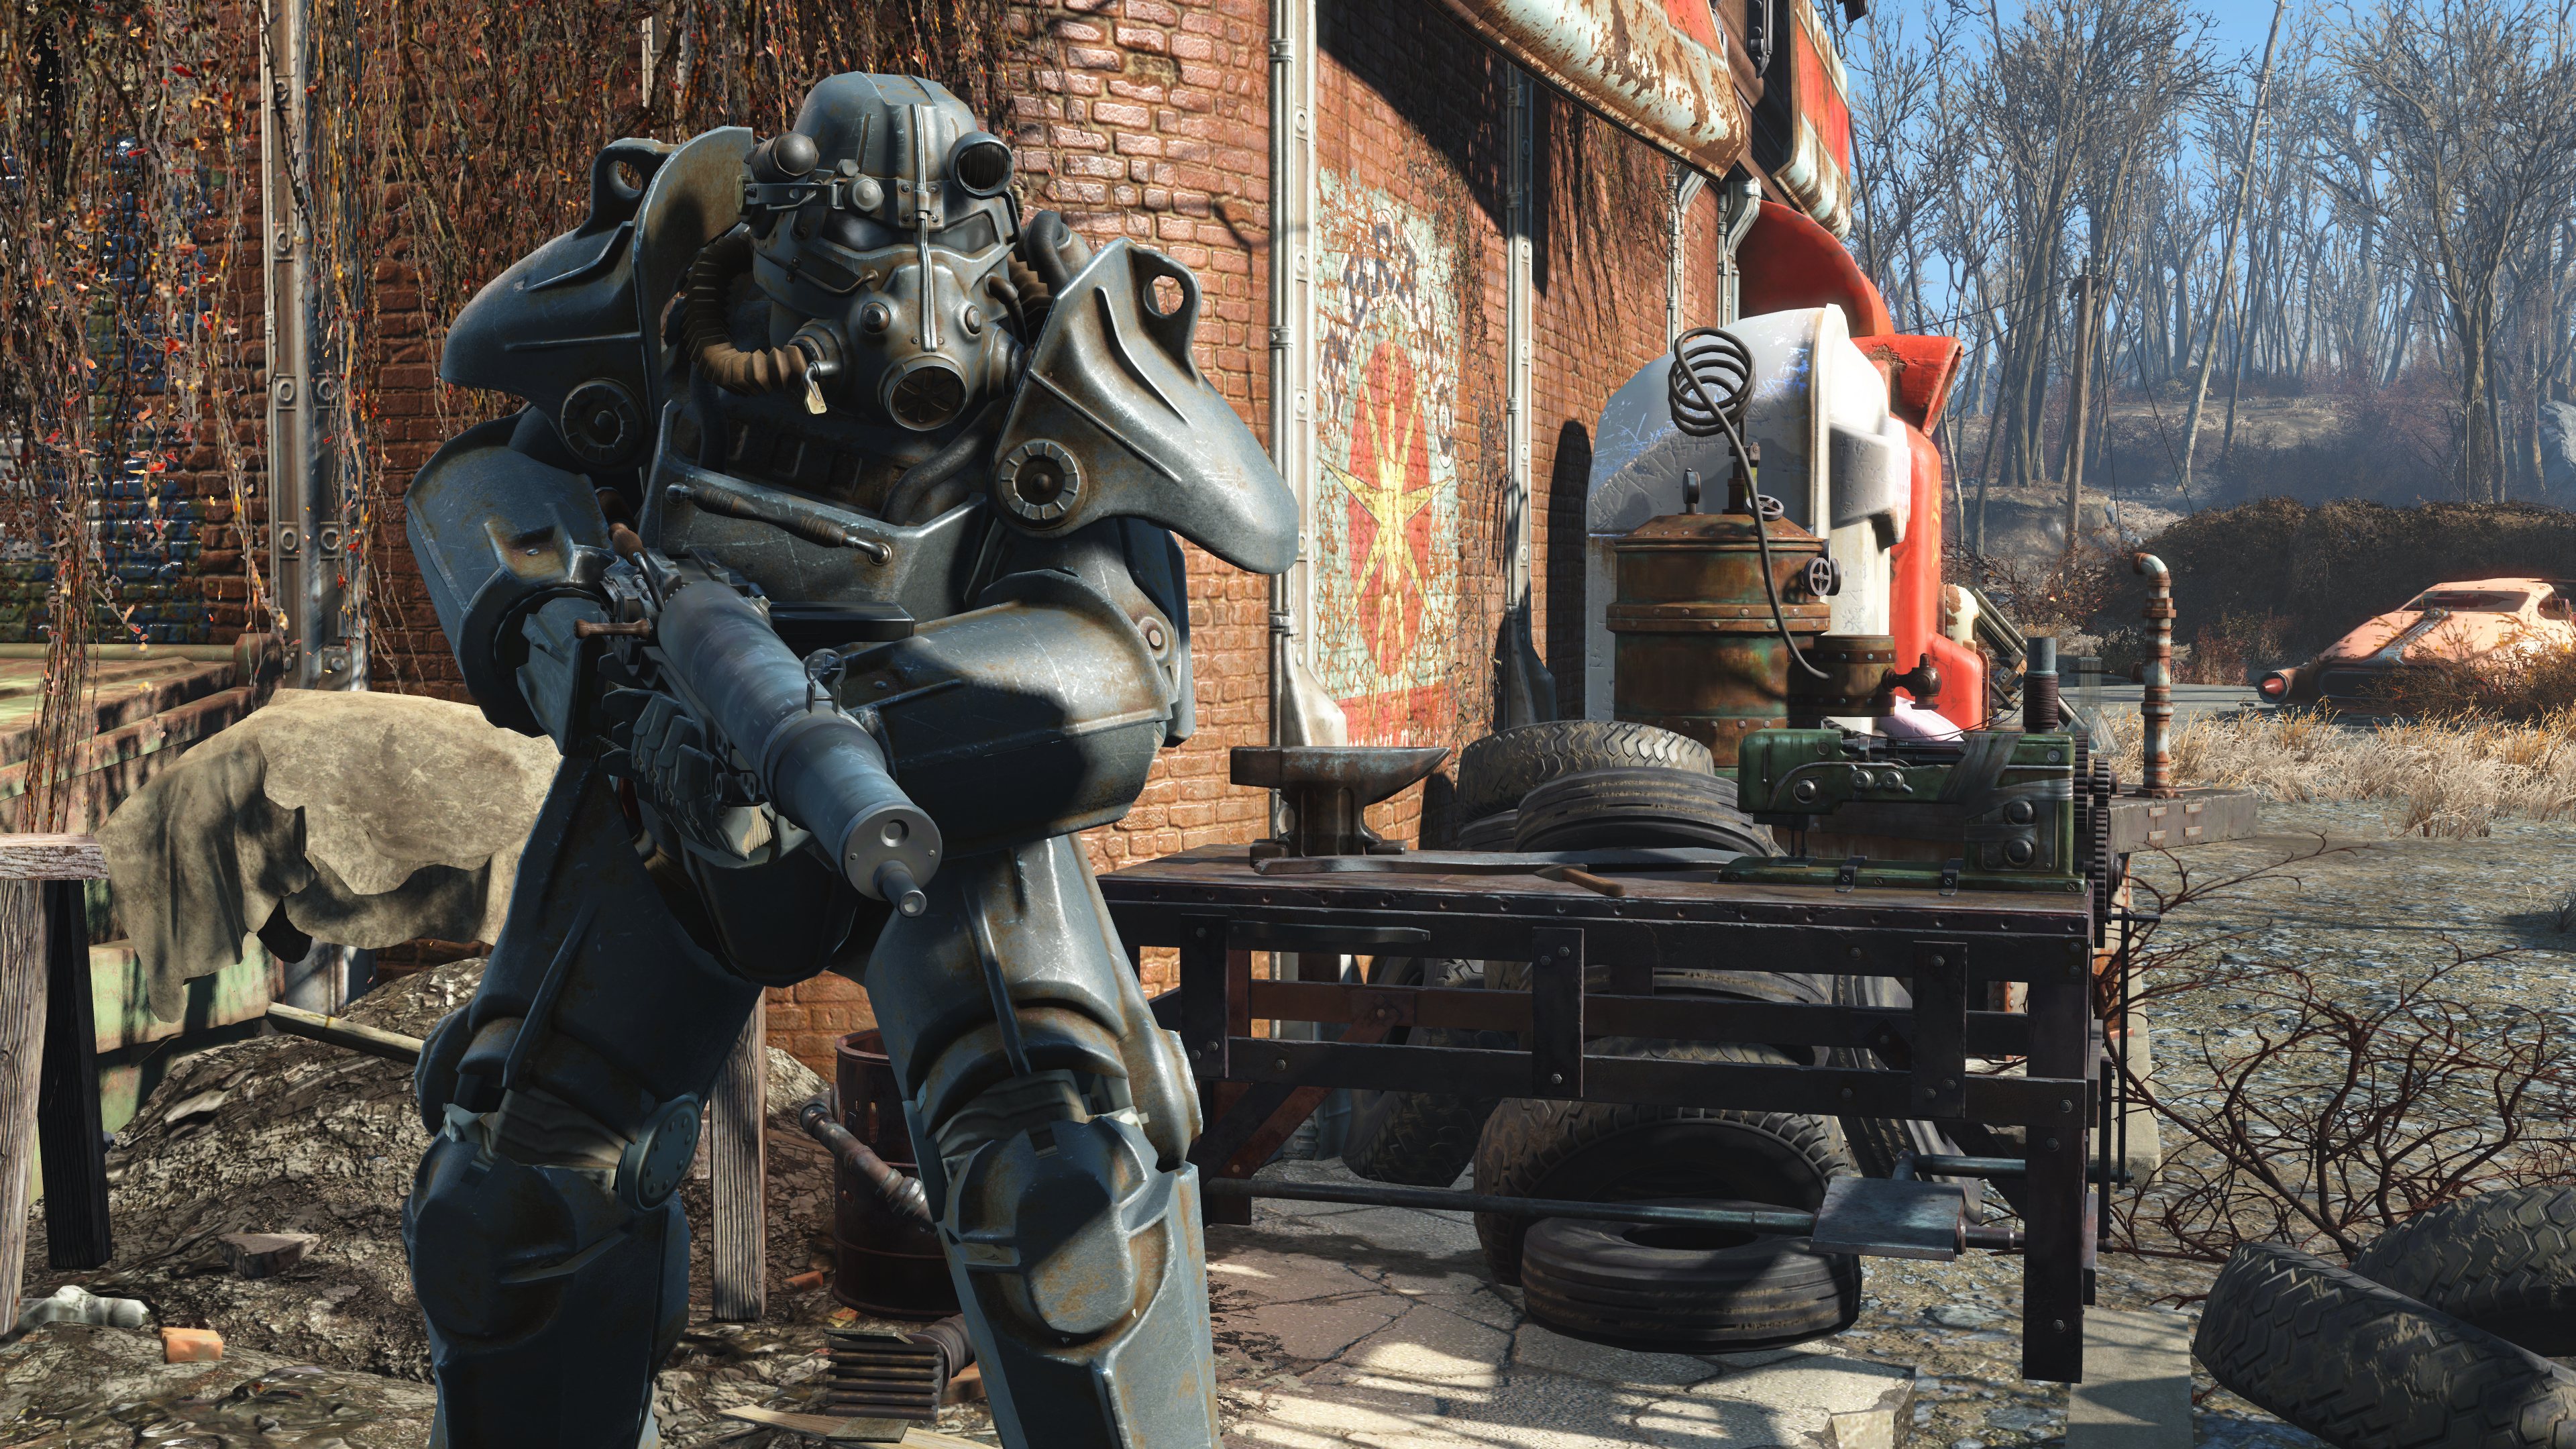 Fallout 4 Finally Gets PS4 Pro Support Next Week